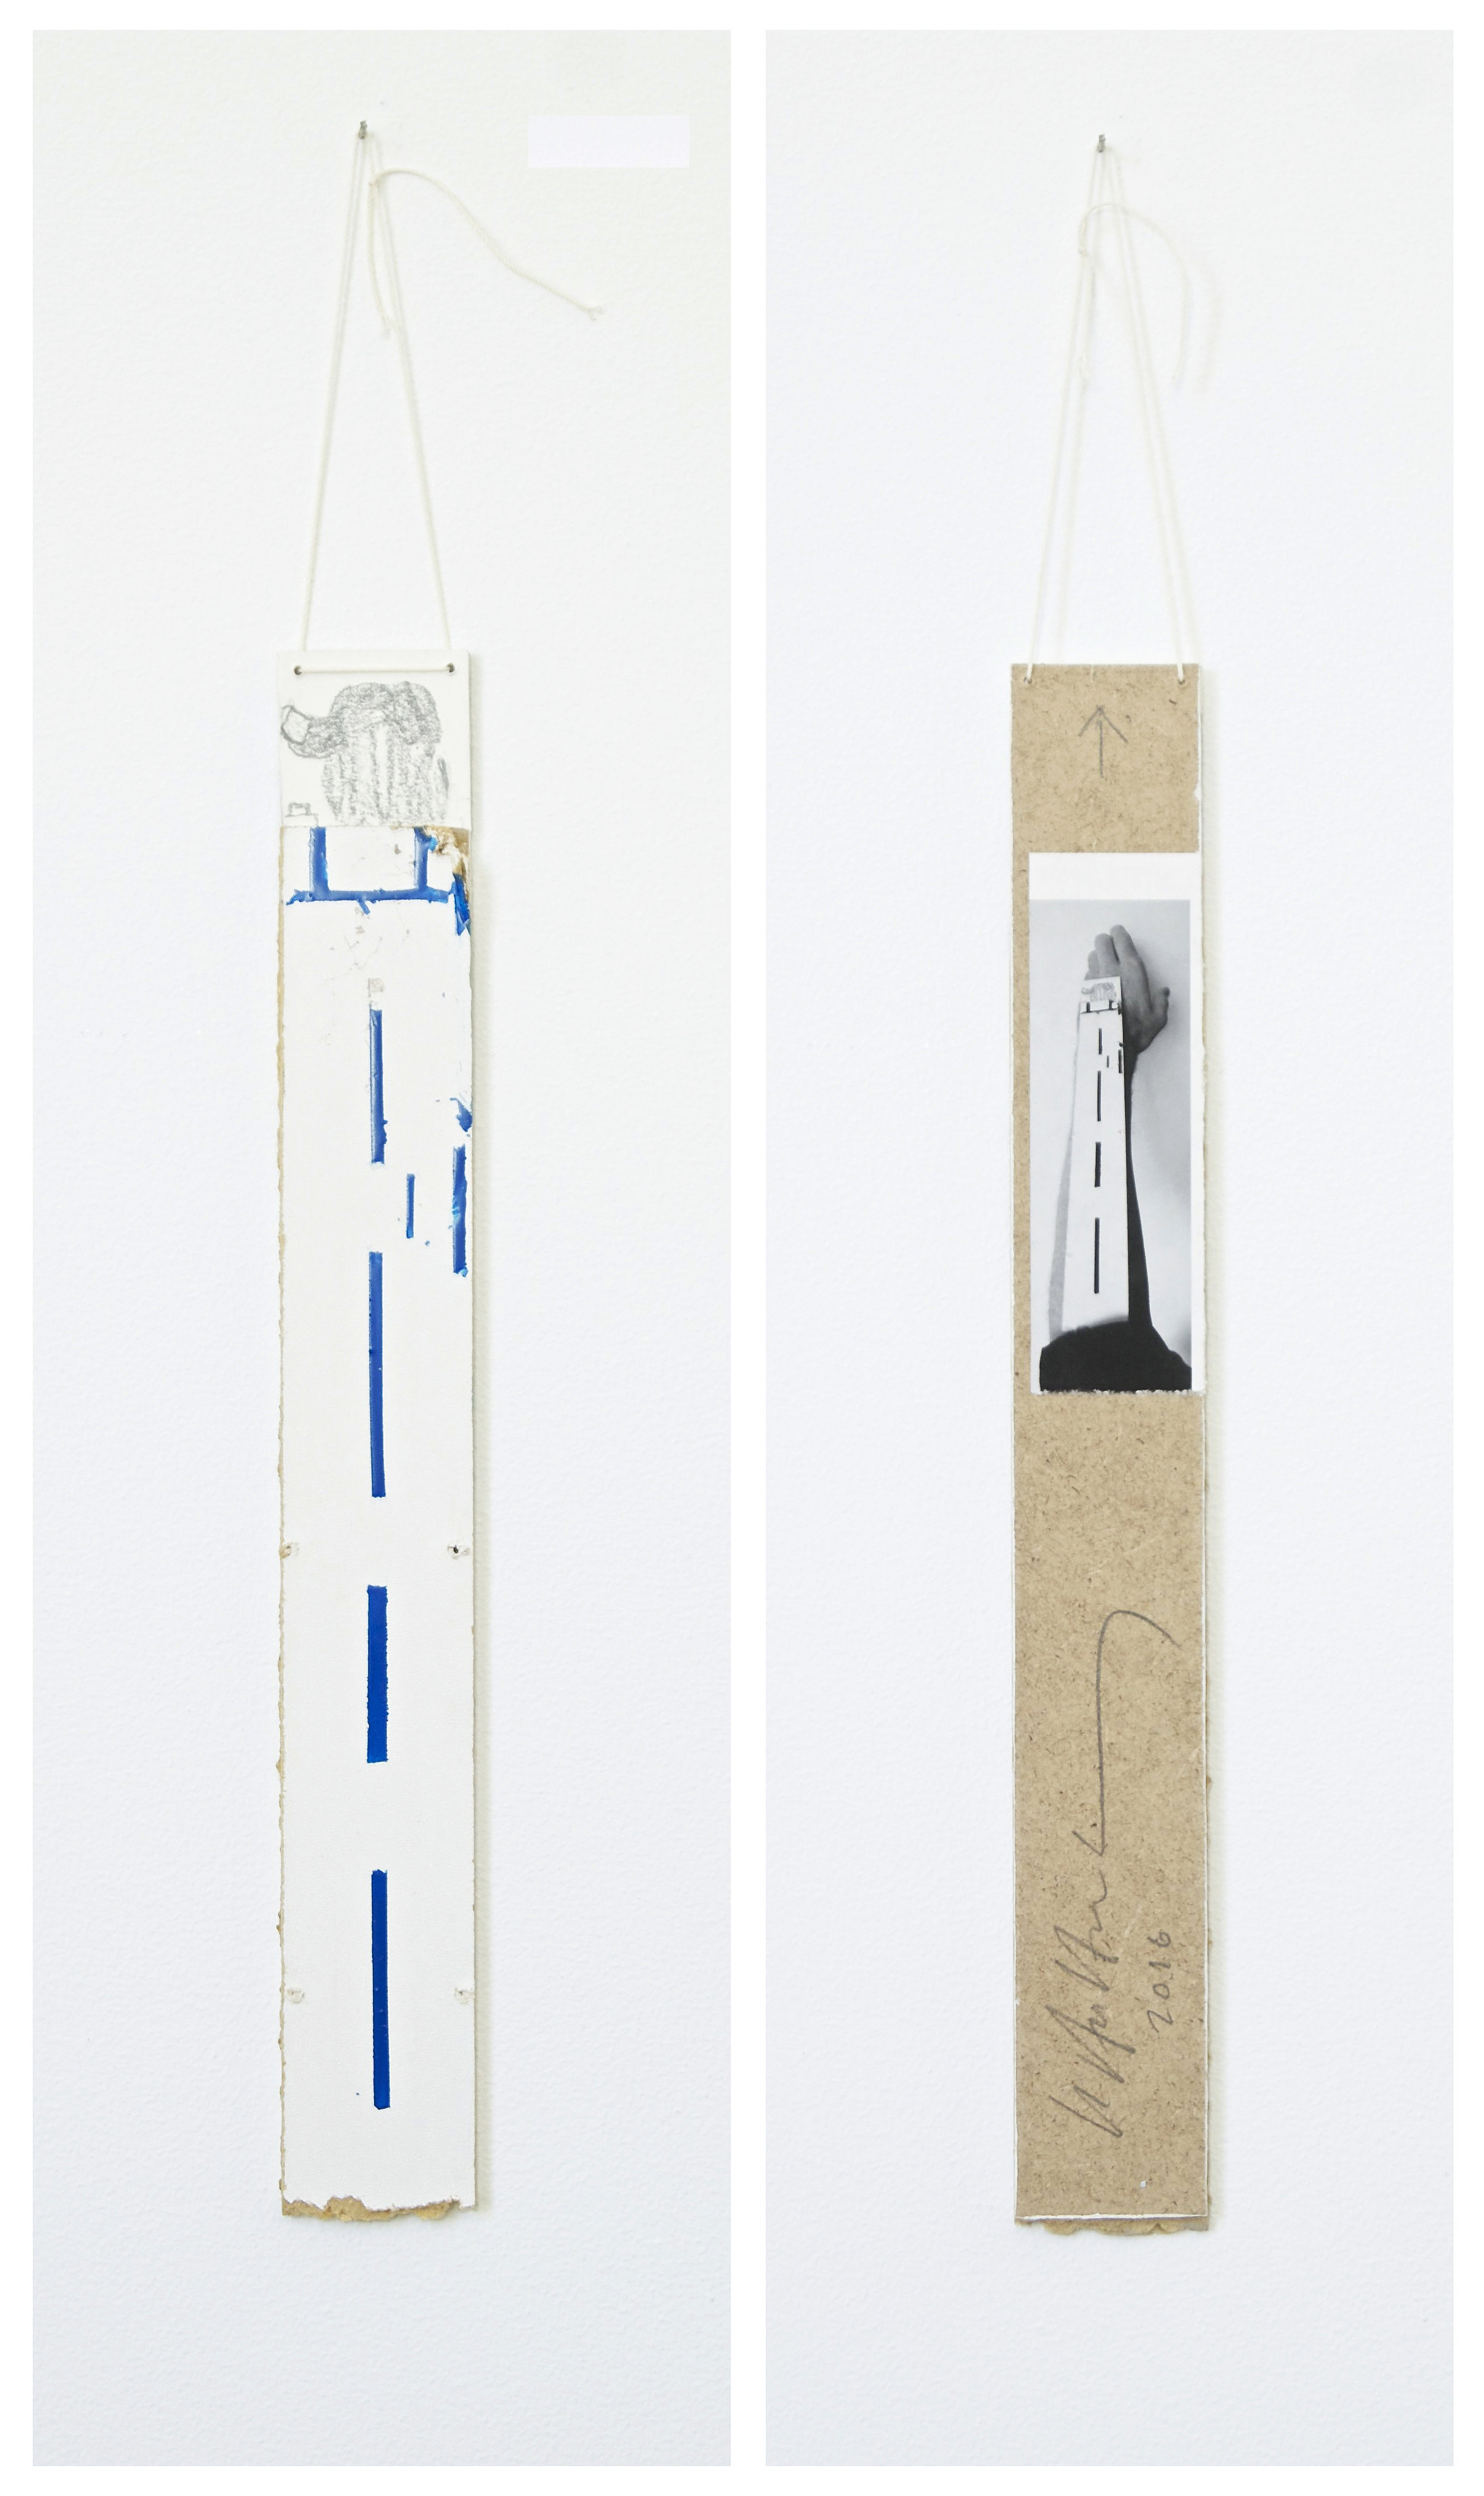 Armstykke/Arm Piece, 2016     33x4 cm.    Laminated board, paper, enamel, graphite, string     (Reverse side is not visible in an exhibition context)